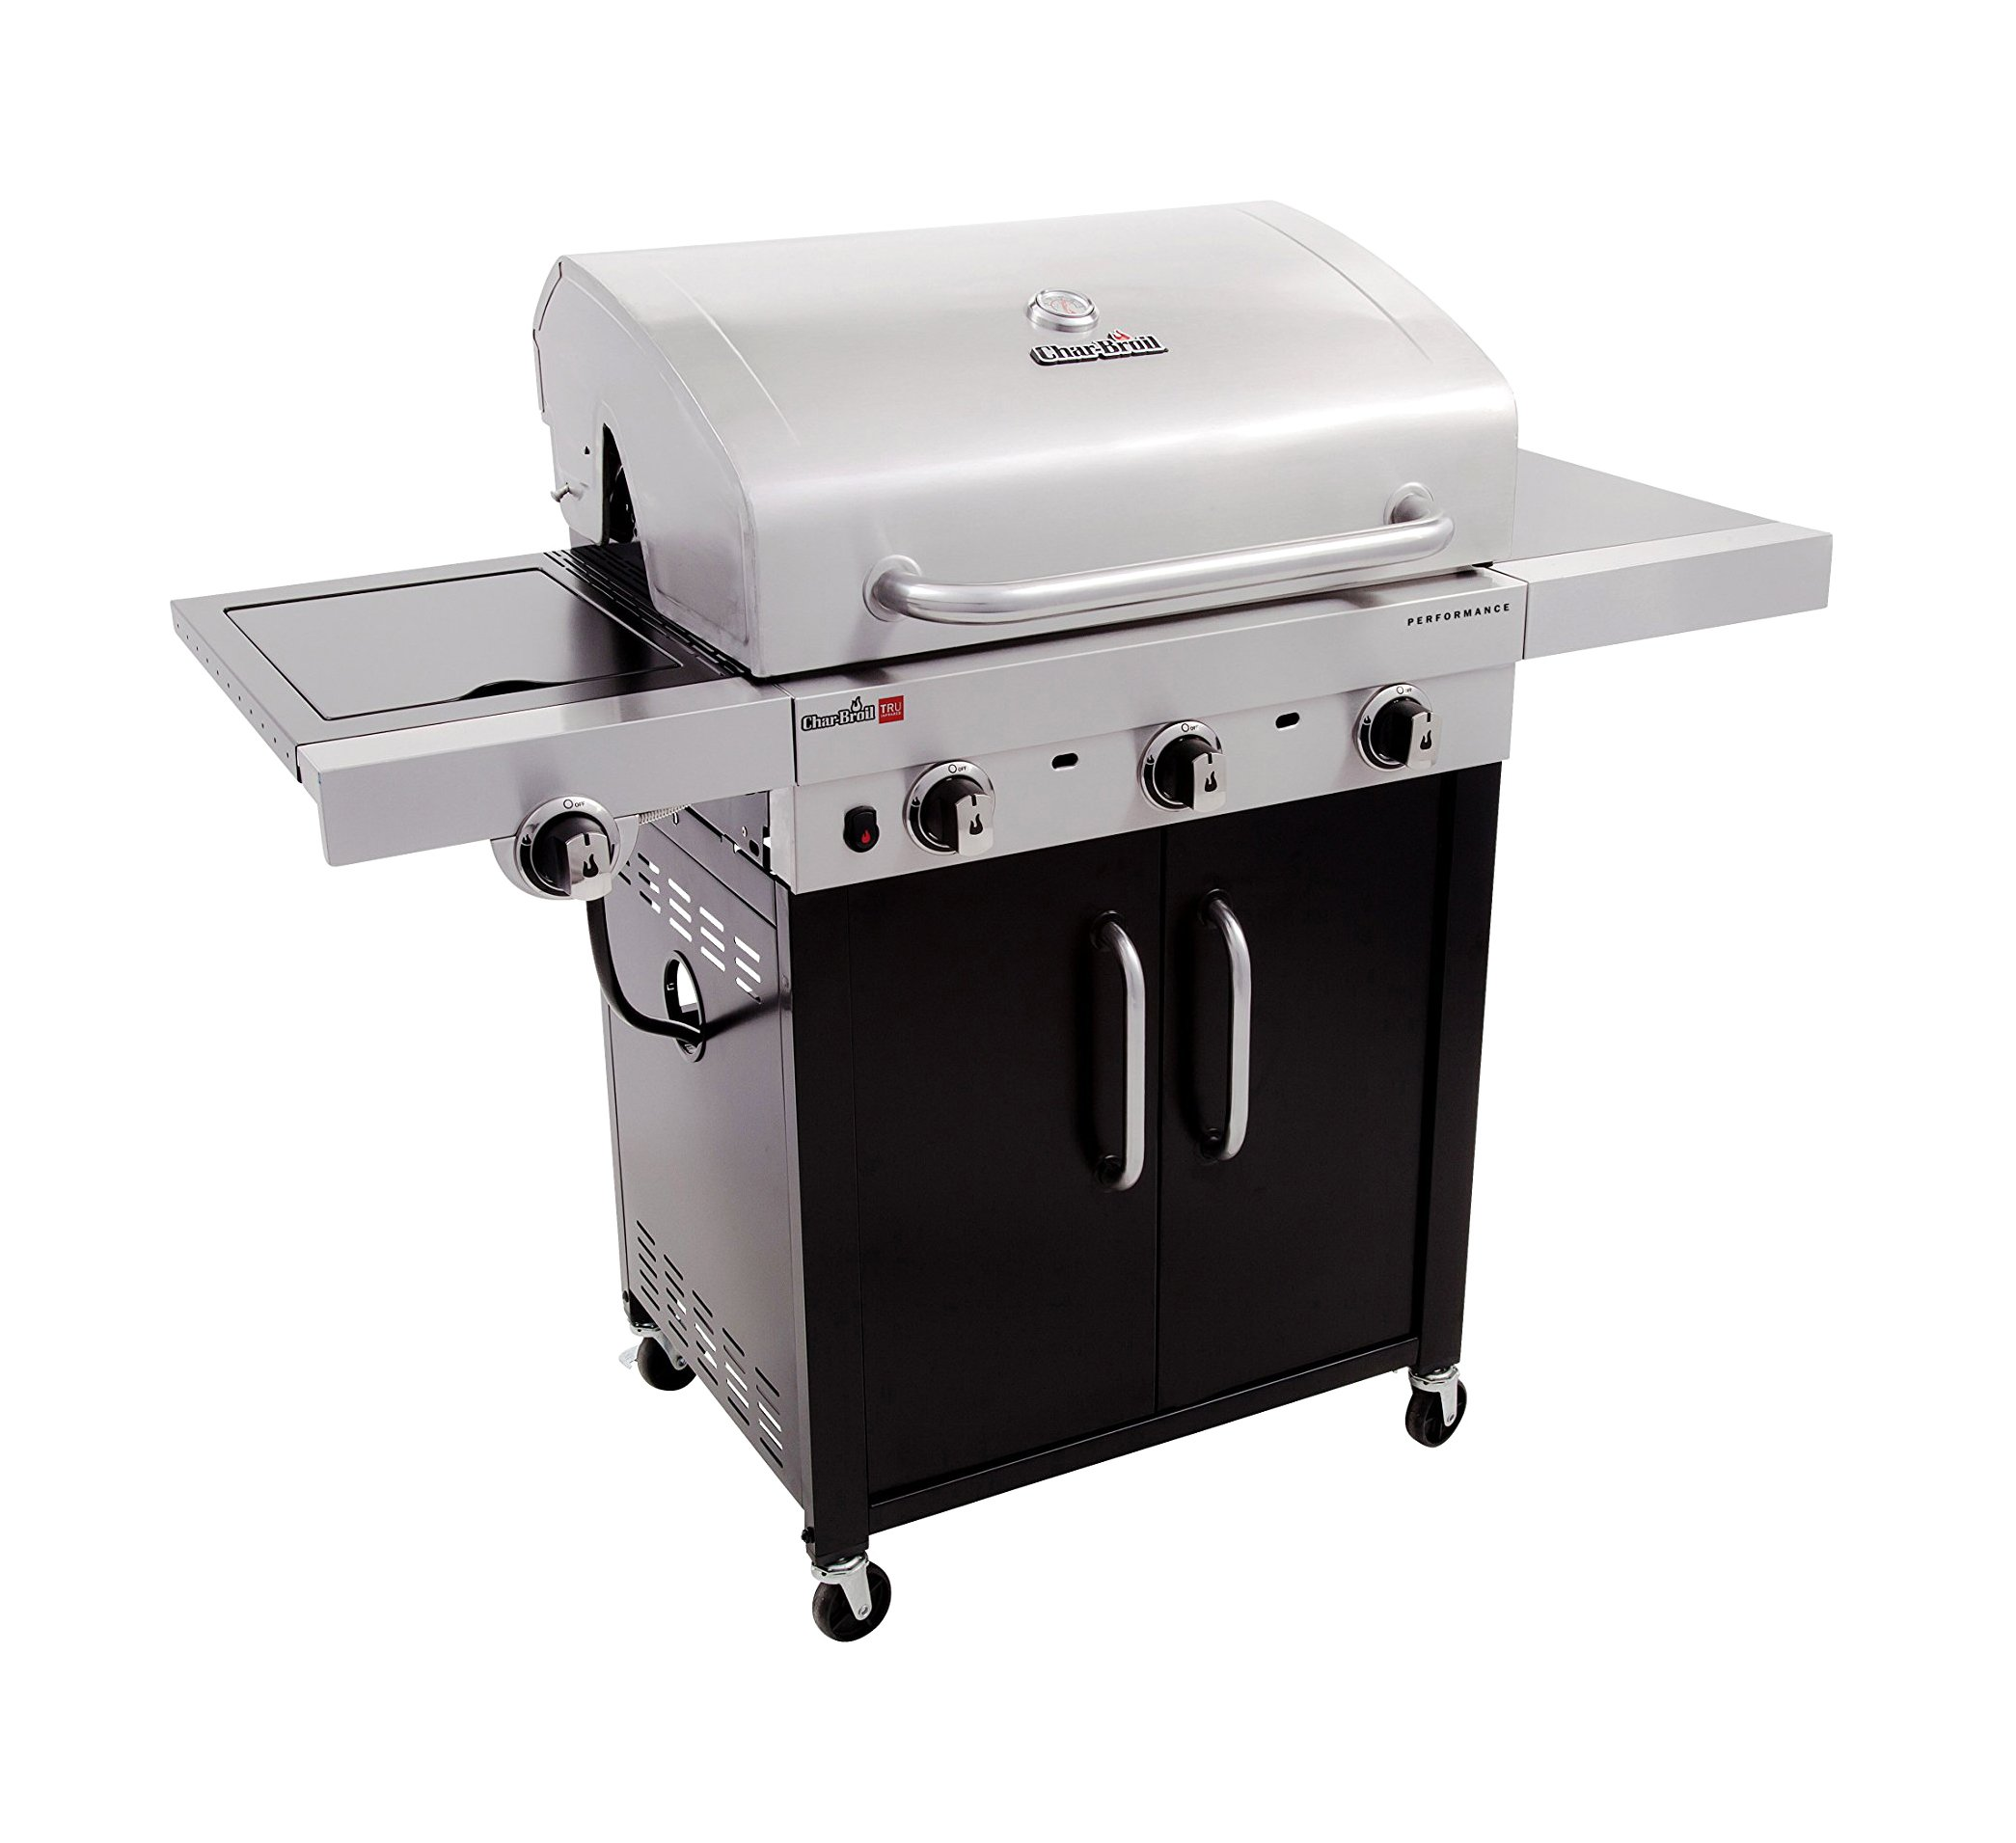 Char-Broil Performance TRU-Infrared 450 3-Burner Cabinet Liquid Propane Gas Grill by Char-Broil